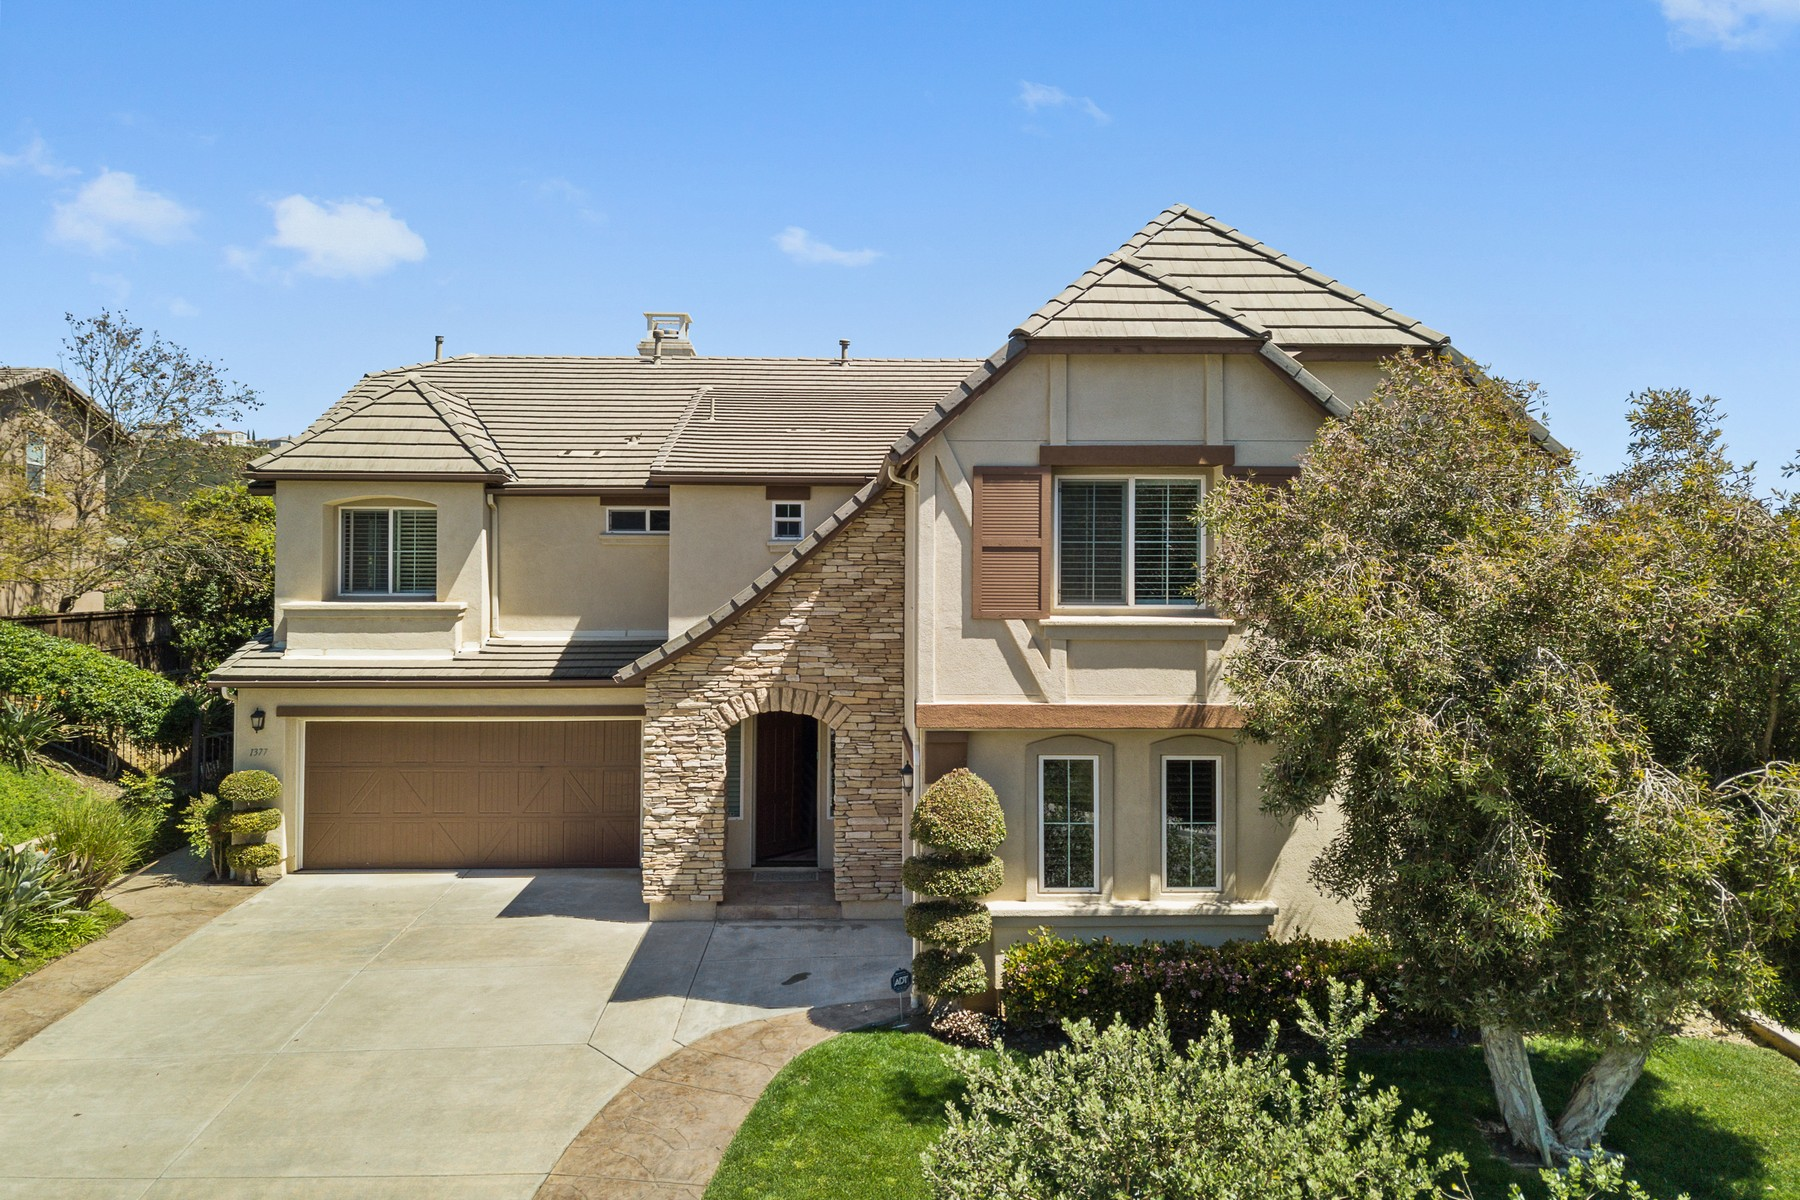 Single Family Home for Active at 1377 Rock Ct San Marcos, California 92078 United States